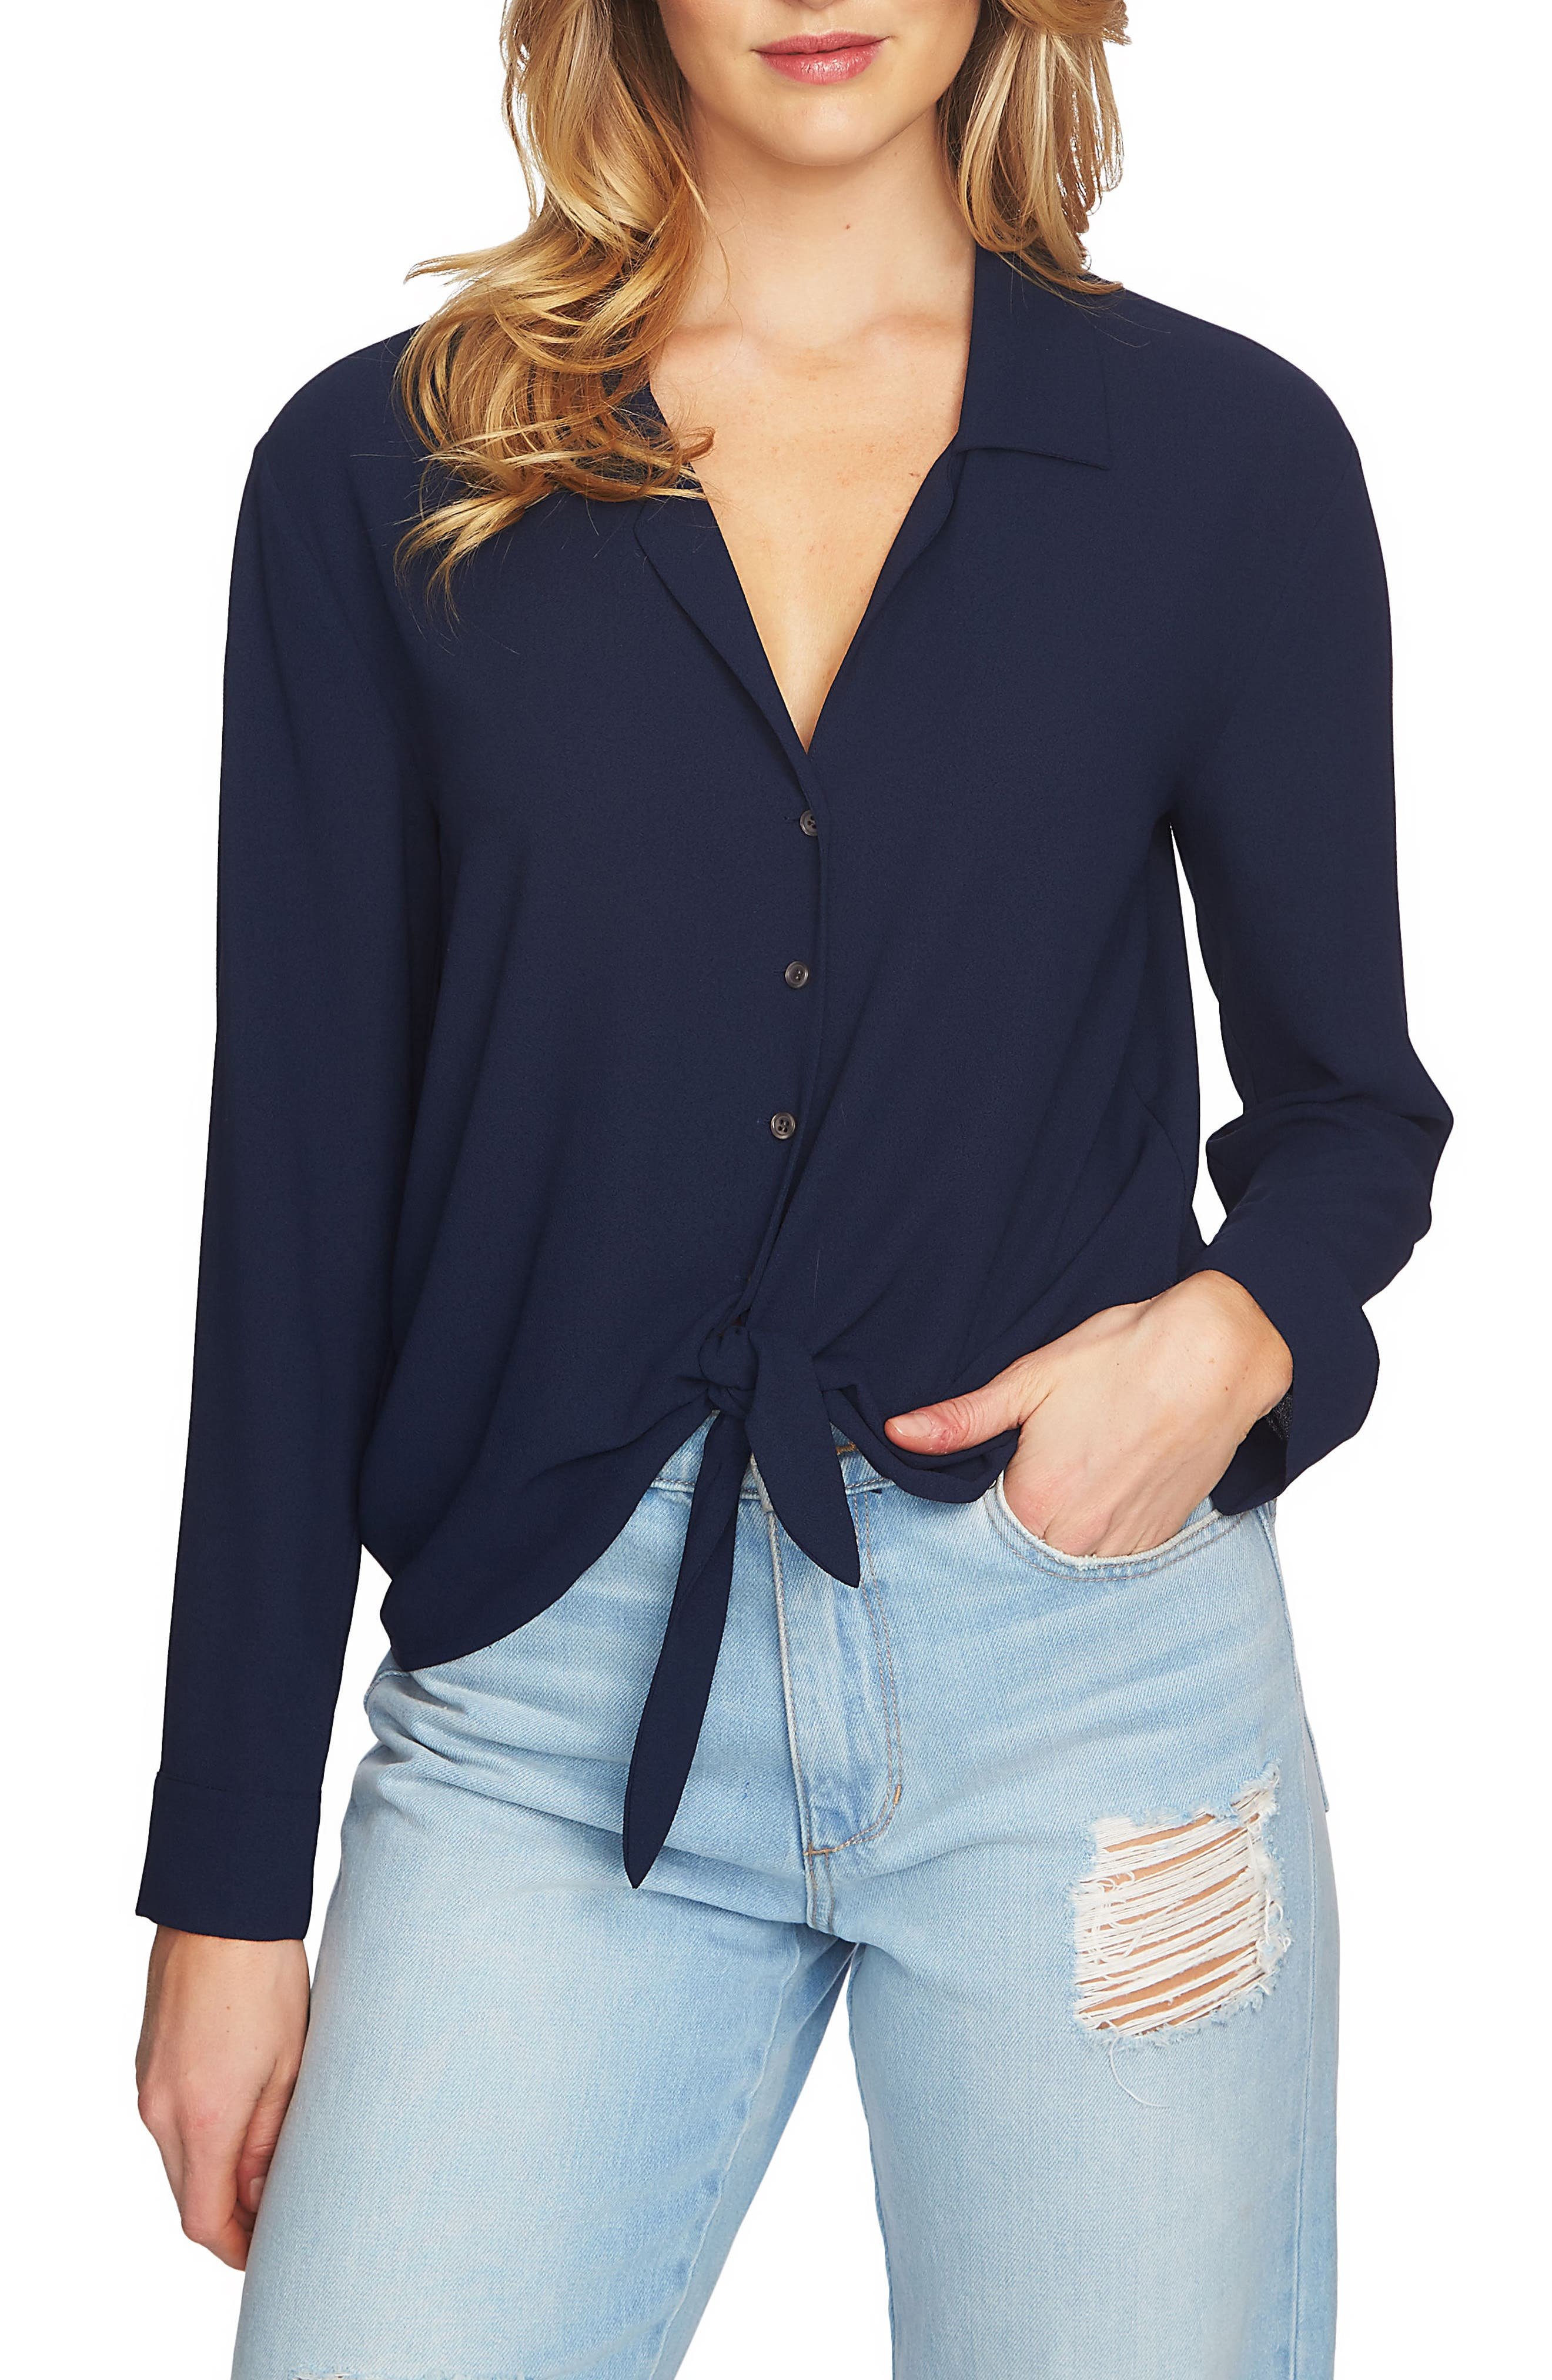 Tie Front Blouse,                         Main,                         color, 553-Navy Yard